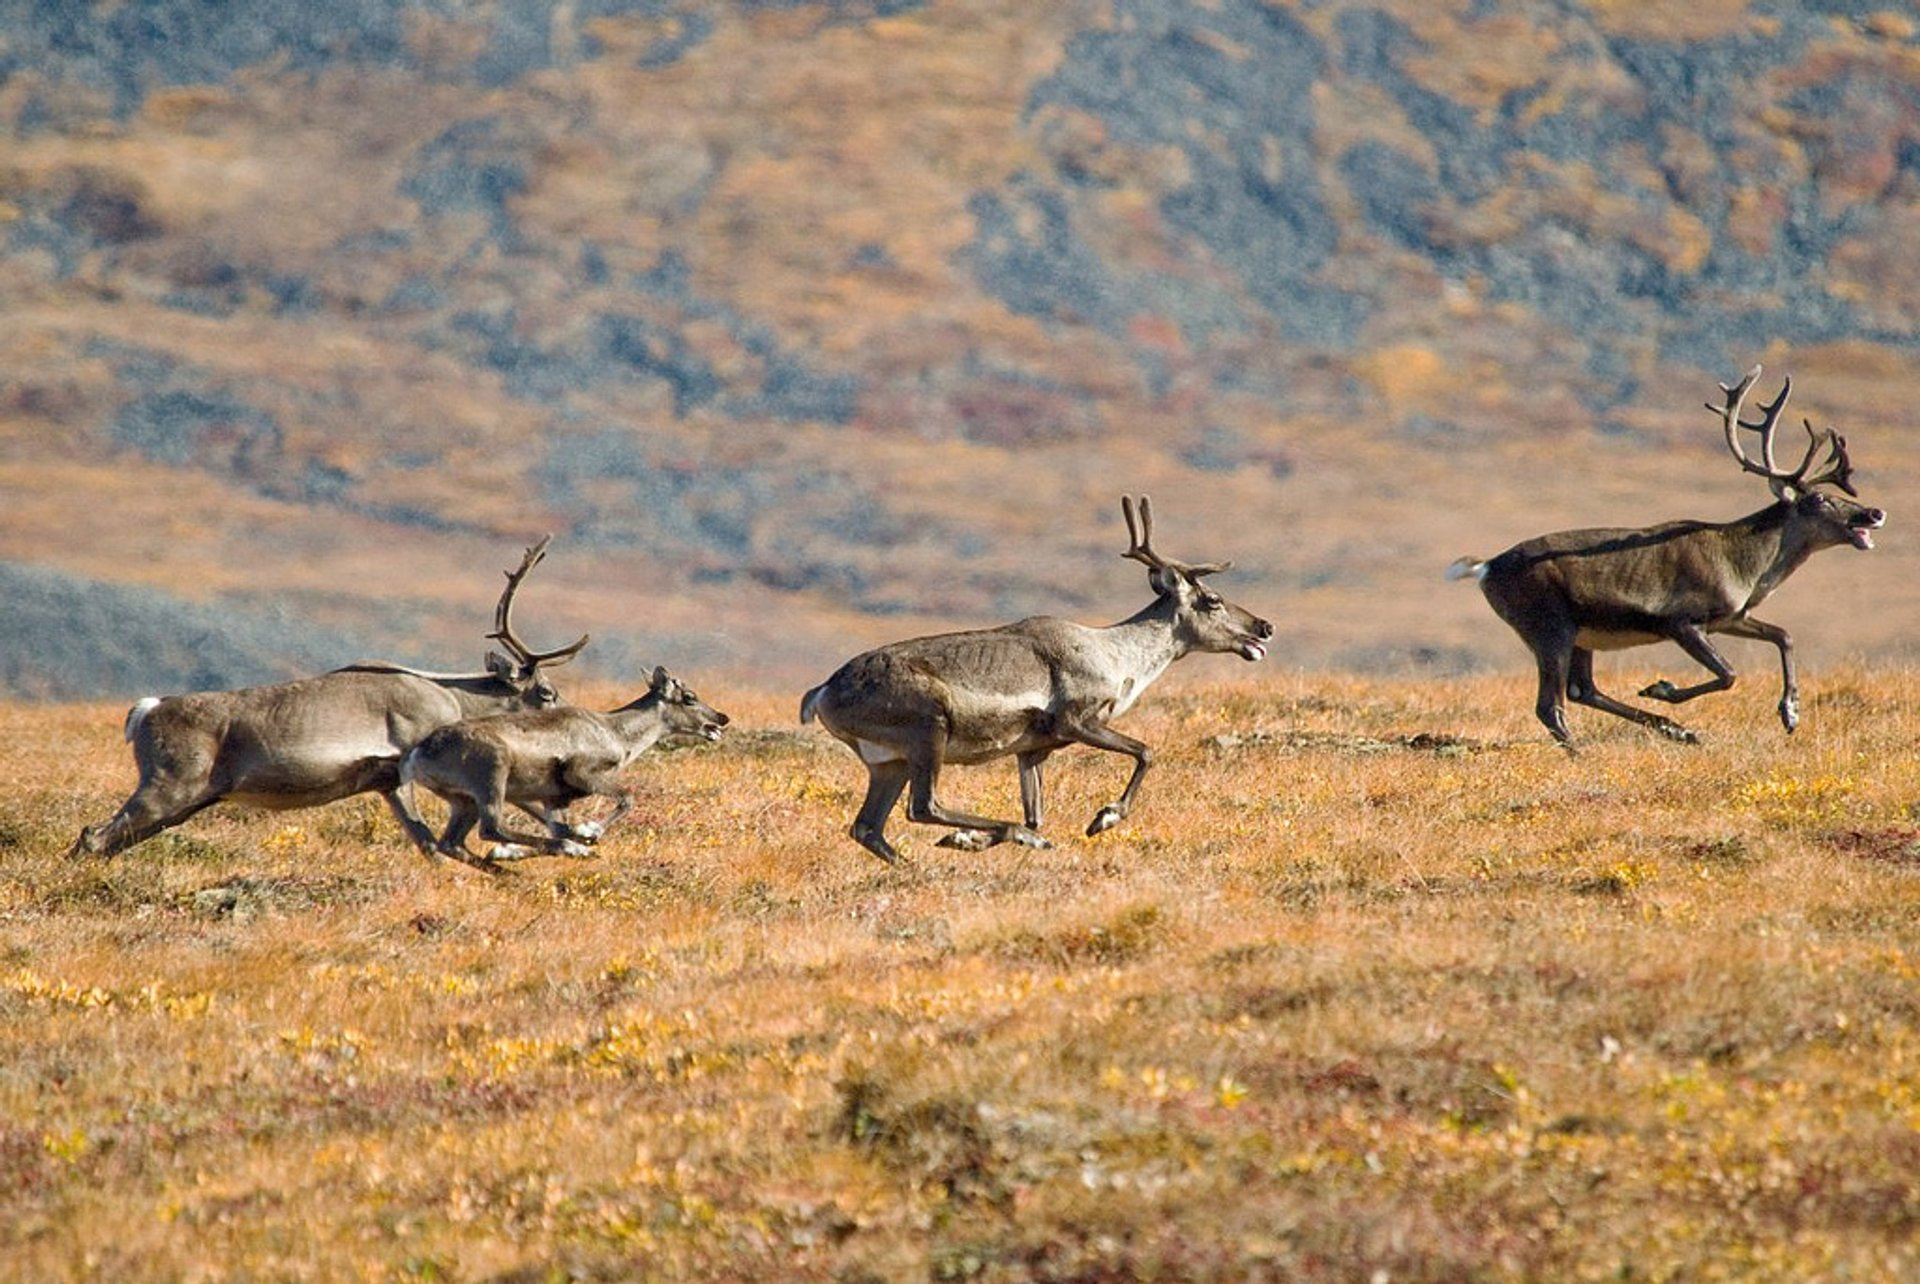 Start of the Porcupine caribou migration, near the Dempster Highway, just south of the NWT border 2020